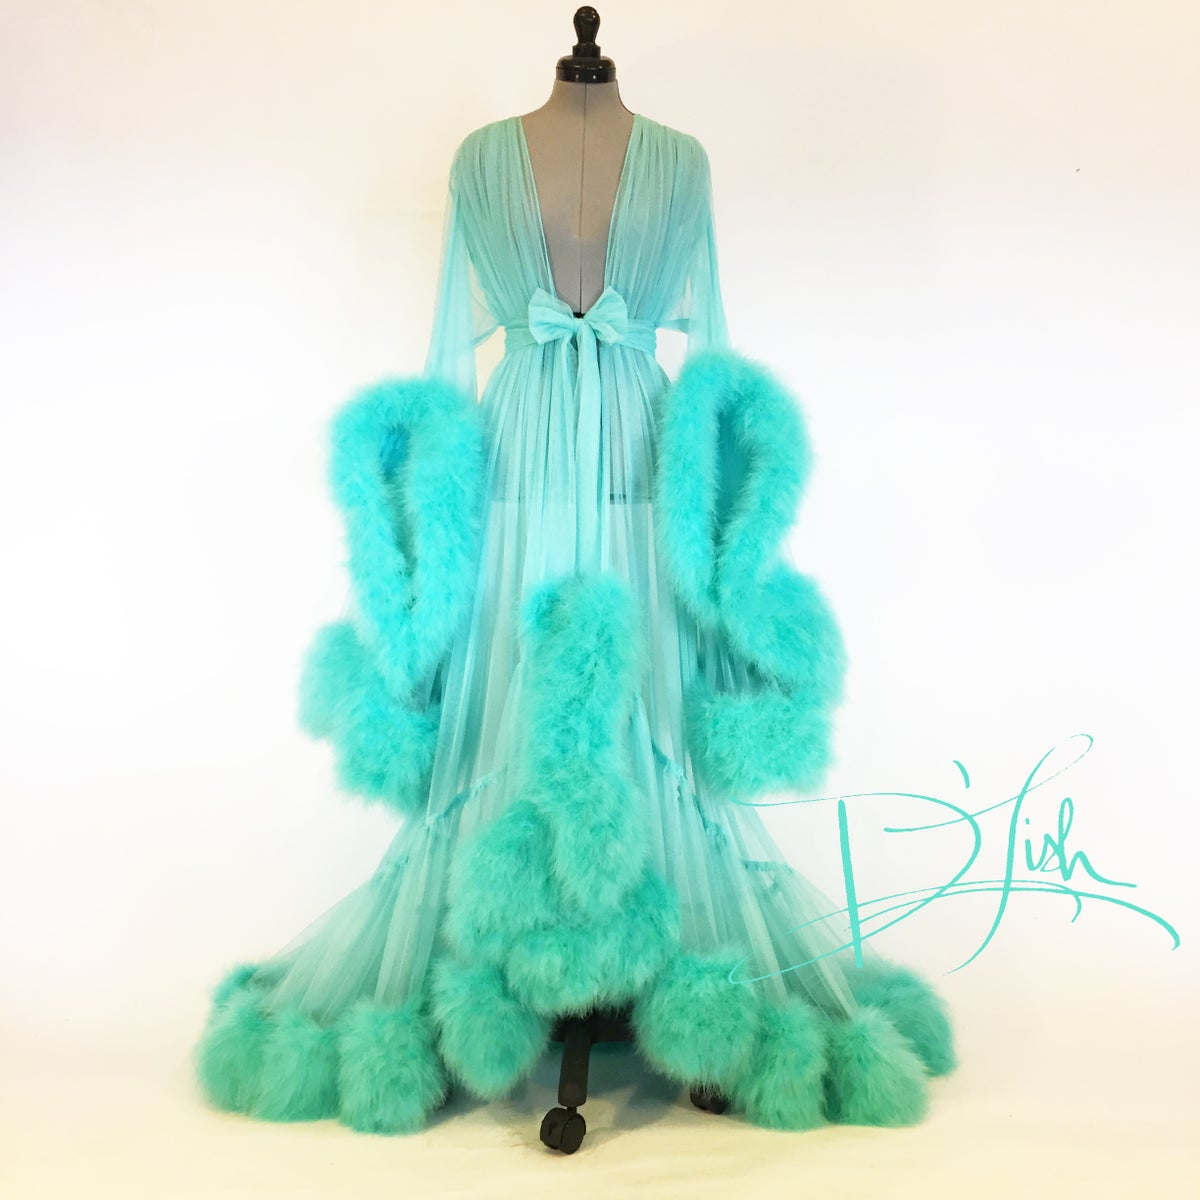 Dressing Gowns And Robes: Deluxe Mint Cassandra Dressing Gown